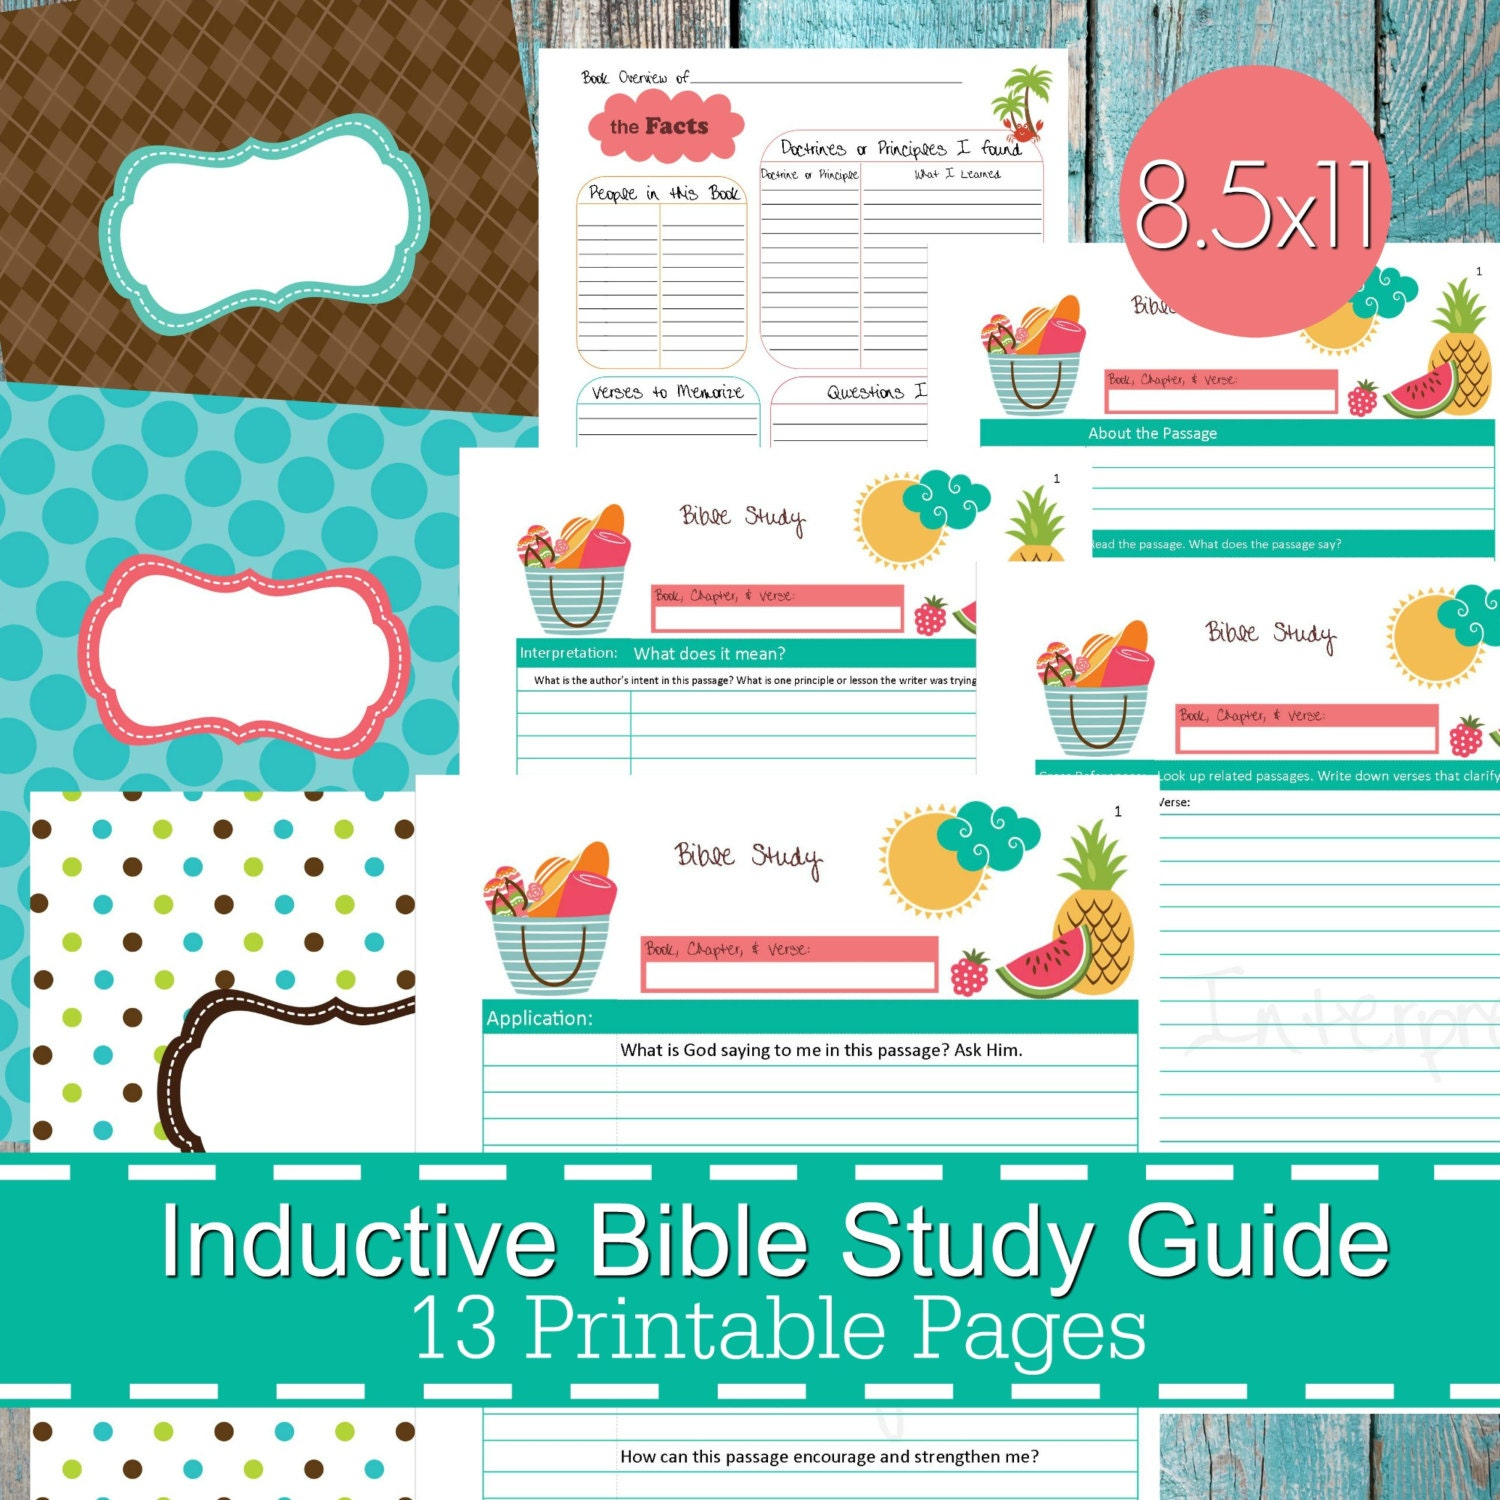 Inductive Bible Study Guide Printables PDF Christian bible | Etsy